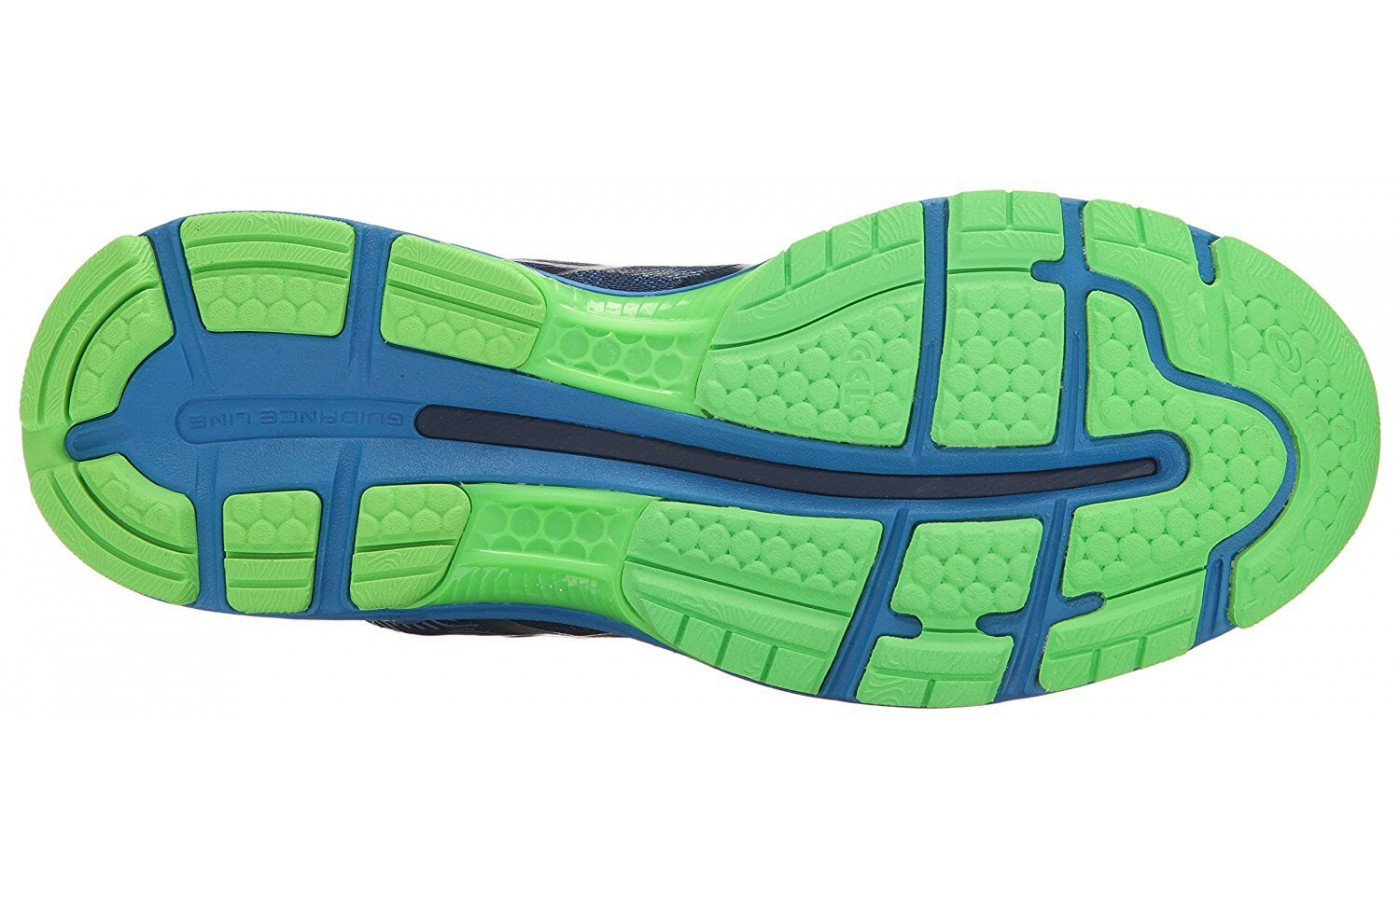 The outsole includes a guidance trusstic system for efficient gait cycle.